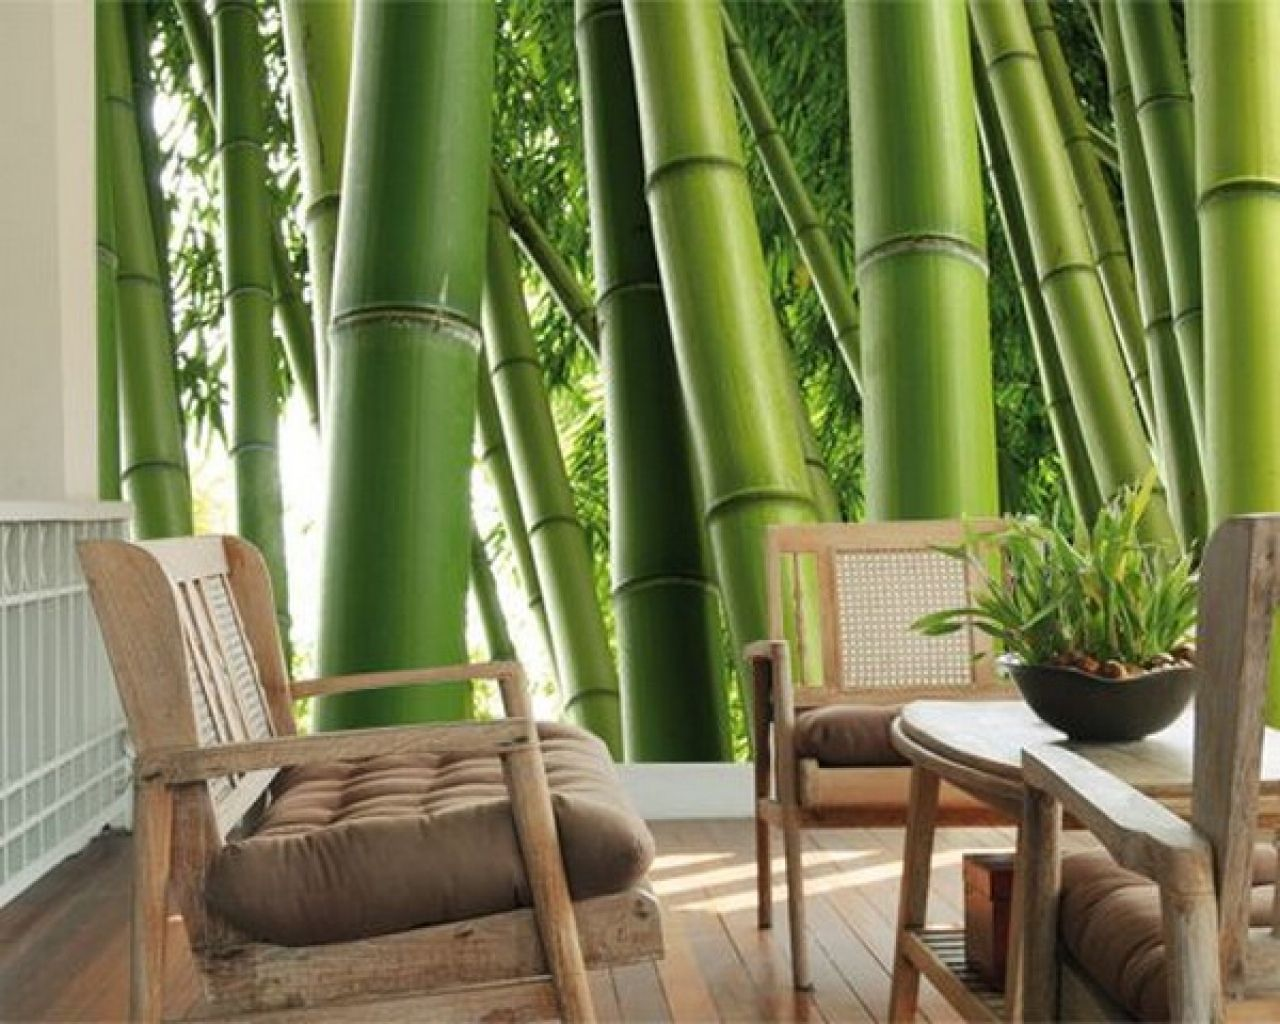 home interior small living room decor with stunning green bamboo wallpaper wall and small rustic. Black Bedroom Furniture Sets. Home Design Ideas